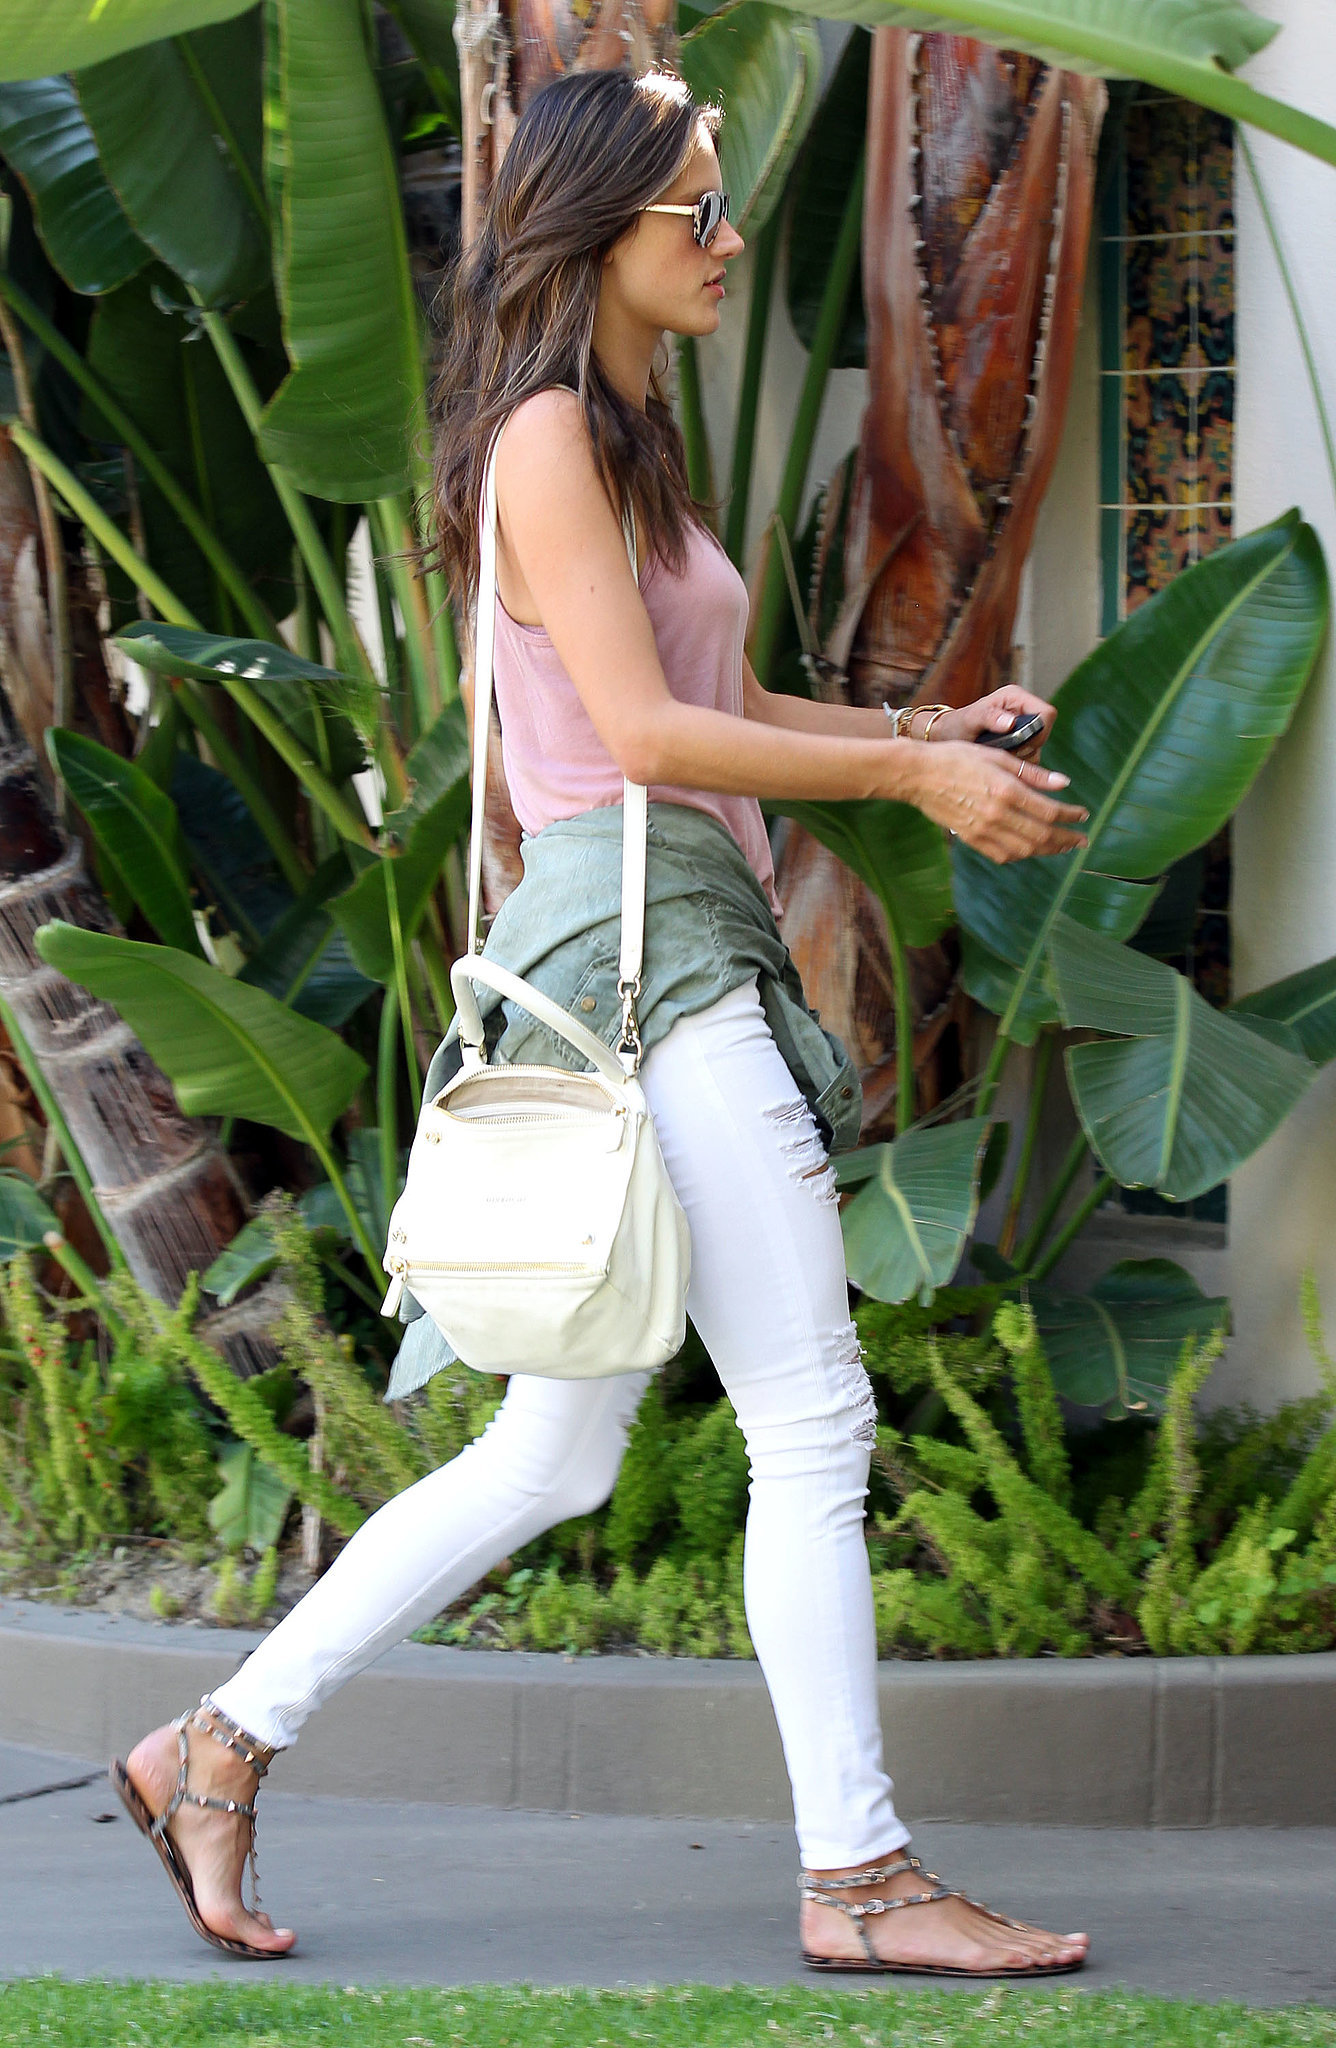 Muted colors combined for an easy off-duty outfit in LA, where the model wore a pink tank top with a green jacket around her waist. For extras, she opted for flat sandals and a Givenchy bag.